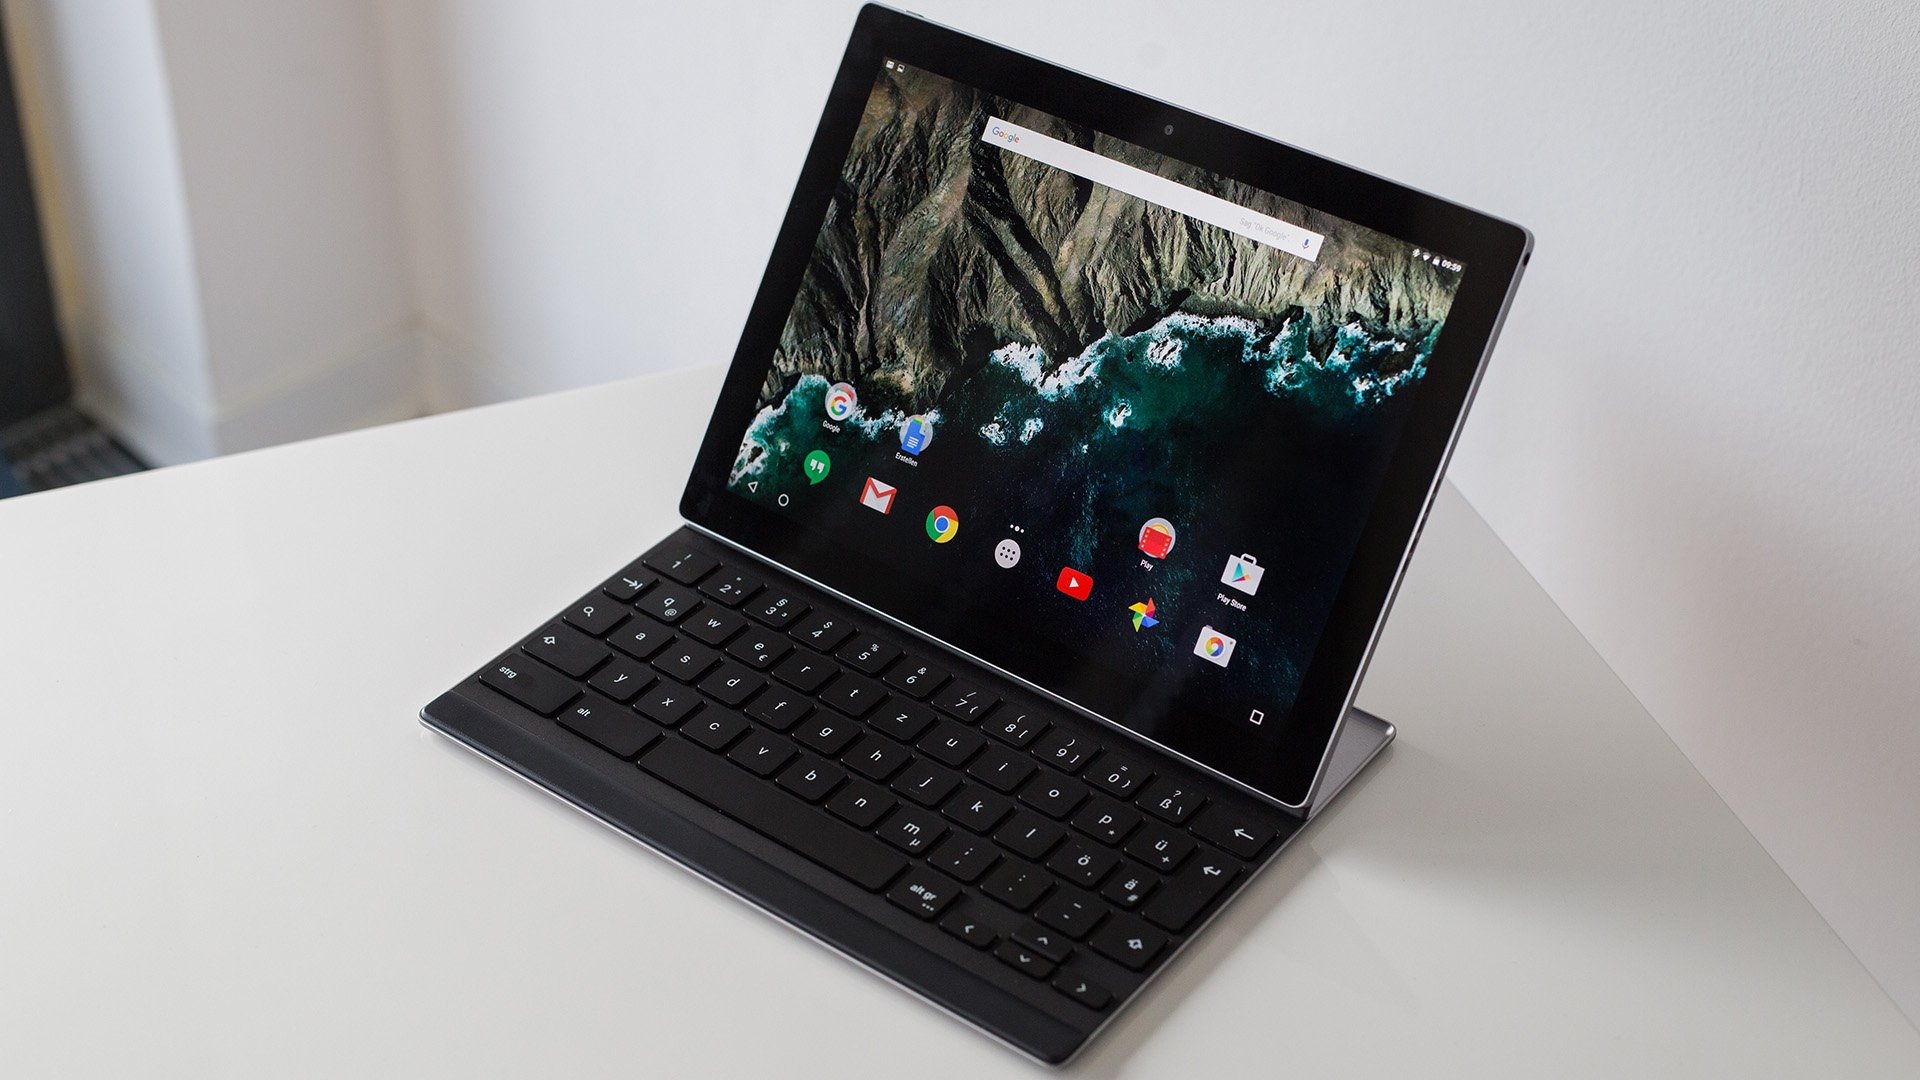 Google Pixel C review: the Android super slate | AndroidPIT